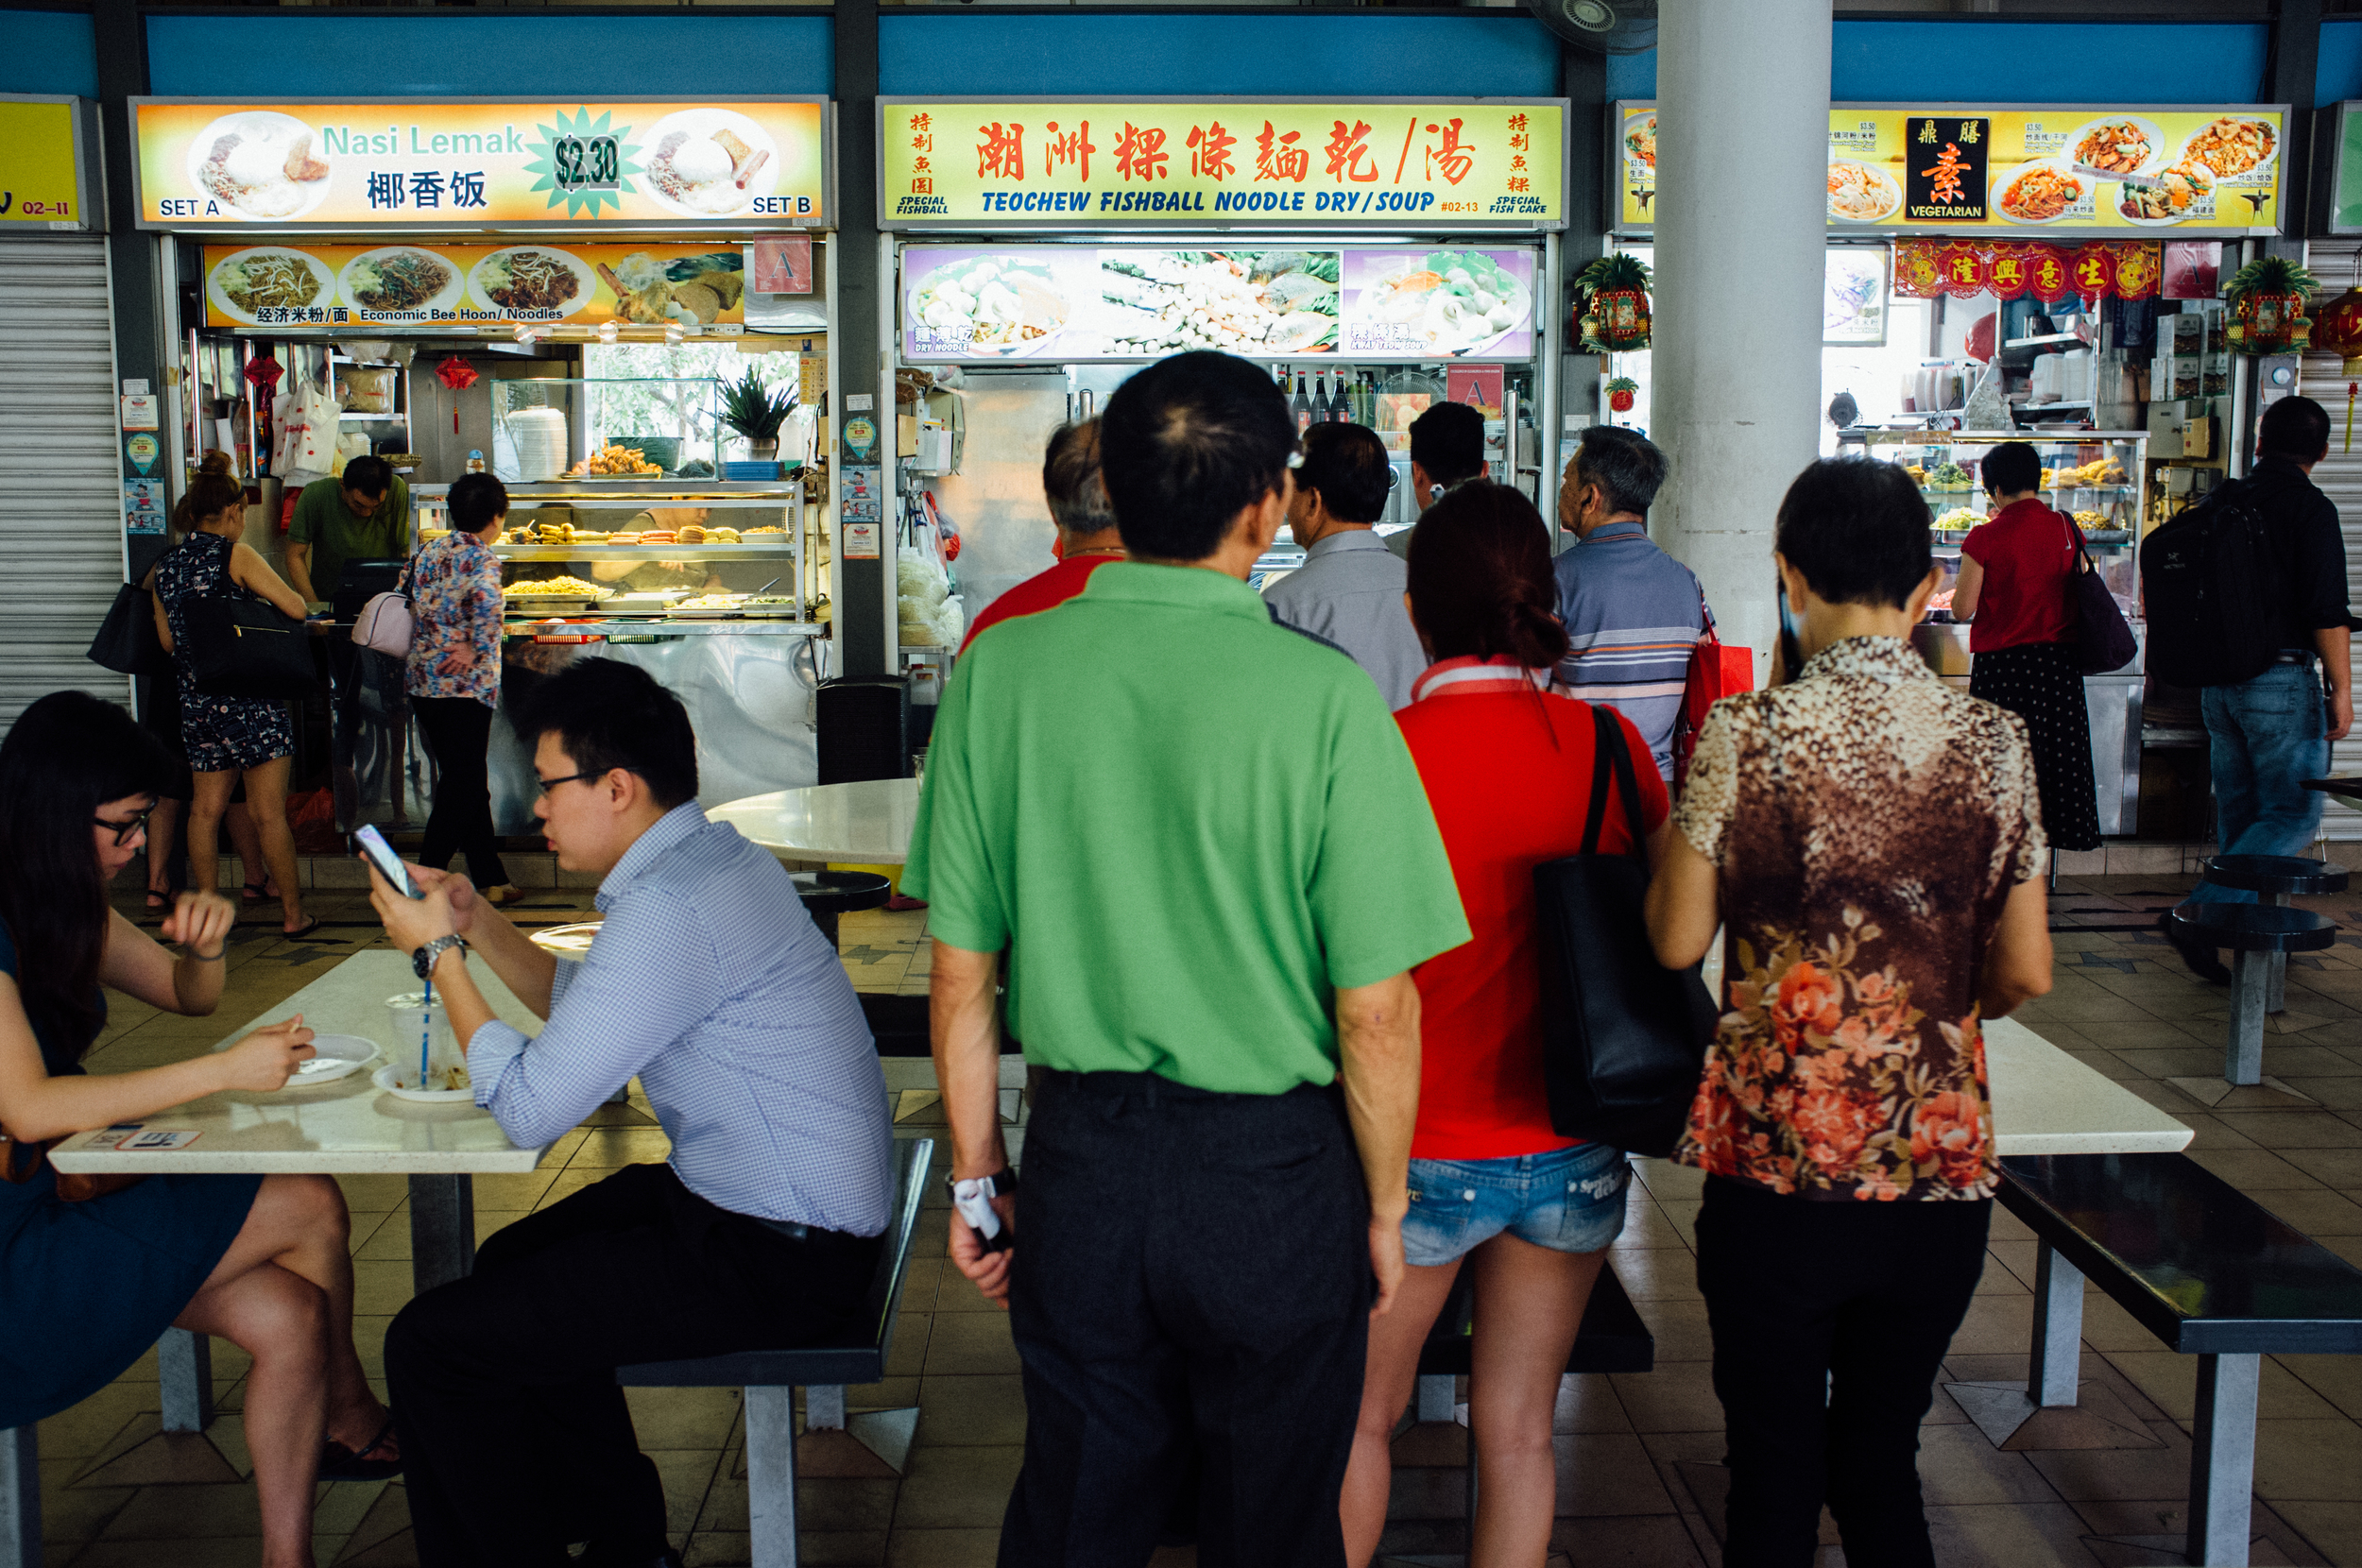 Morning Fish Ball Noodle queue, Tiong Bahru Food Centre